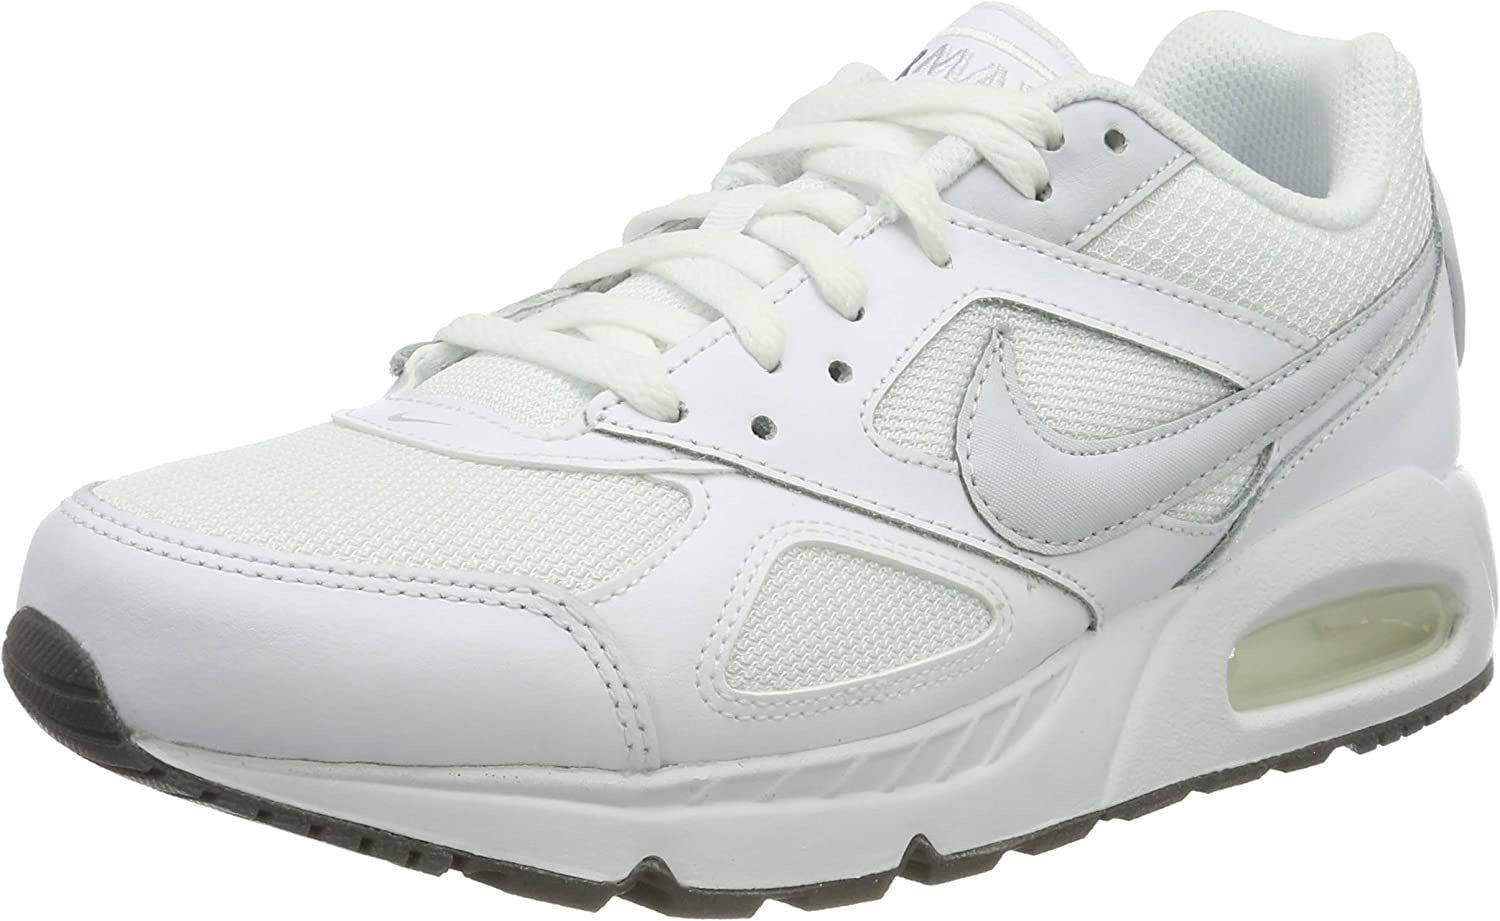   Nike Women's WMNS Air Max Ivo Trainers   Road